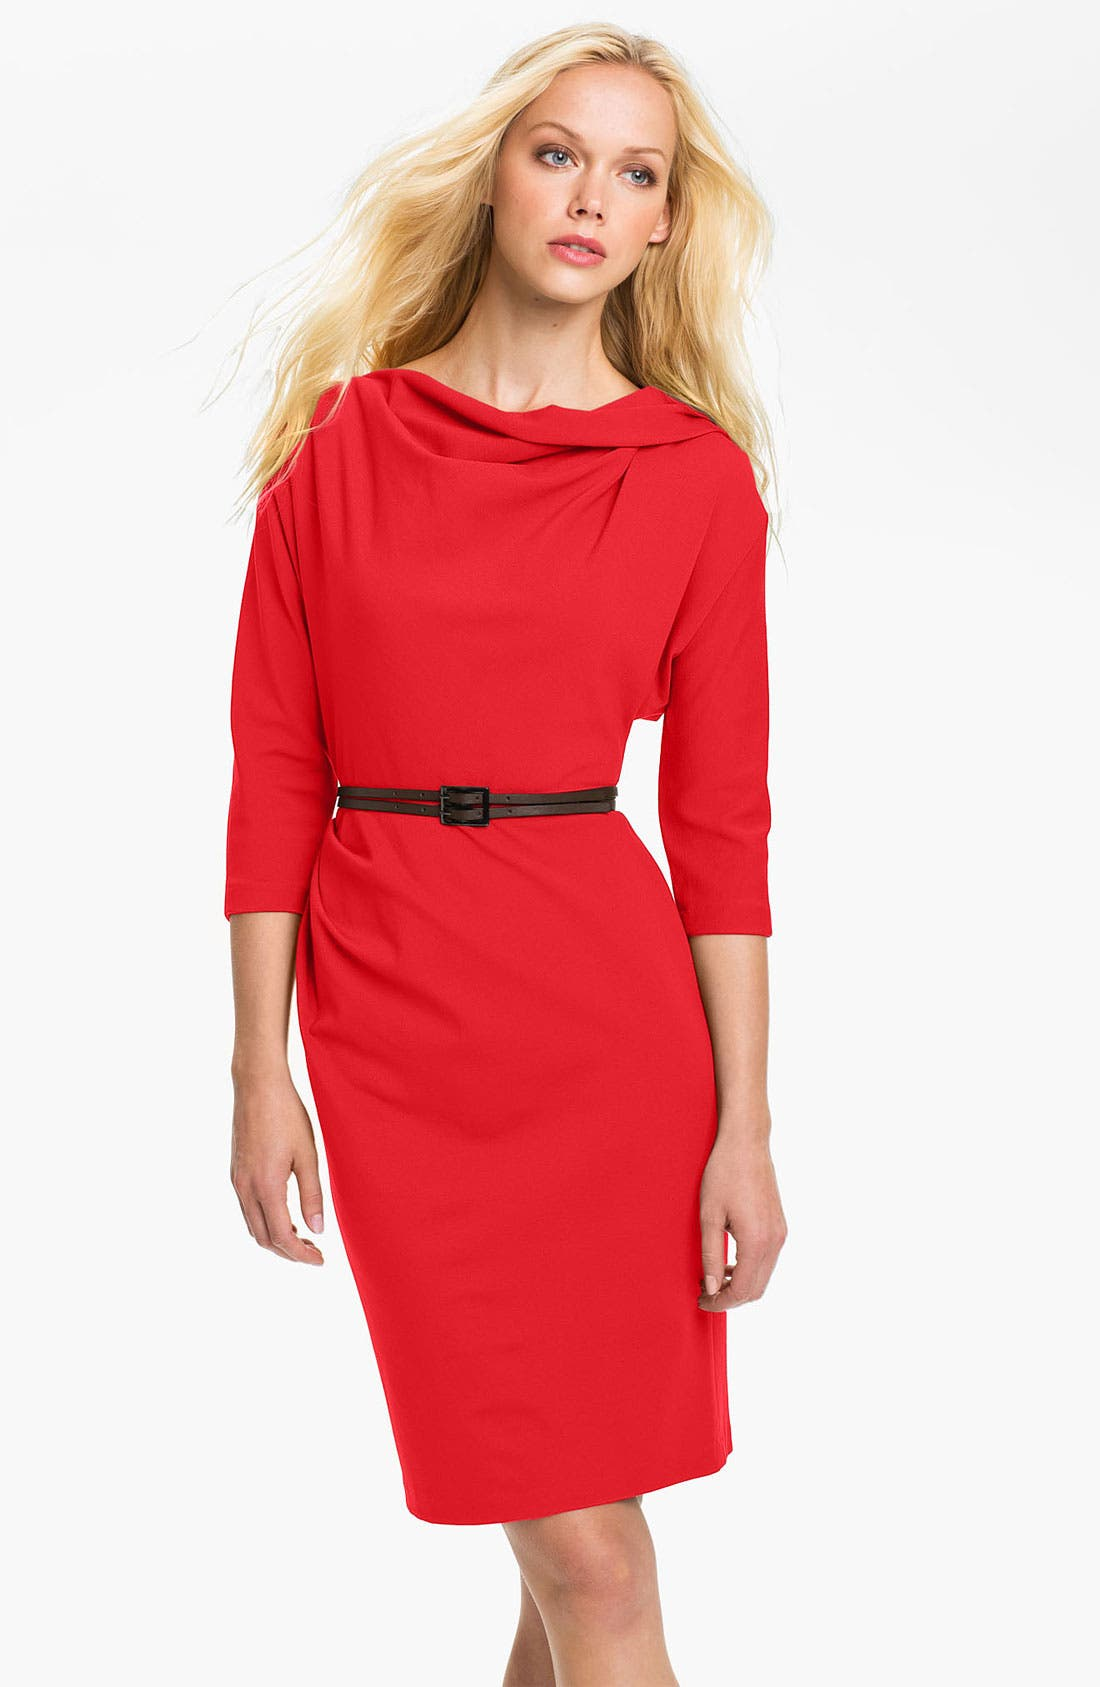 Main Image - Suzi Chin for Maggy Boutique Belted Dolman Sleeve Sheath Dress